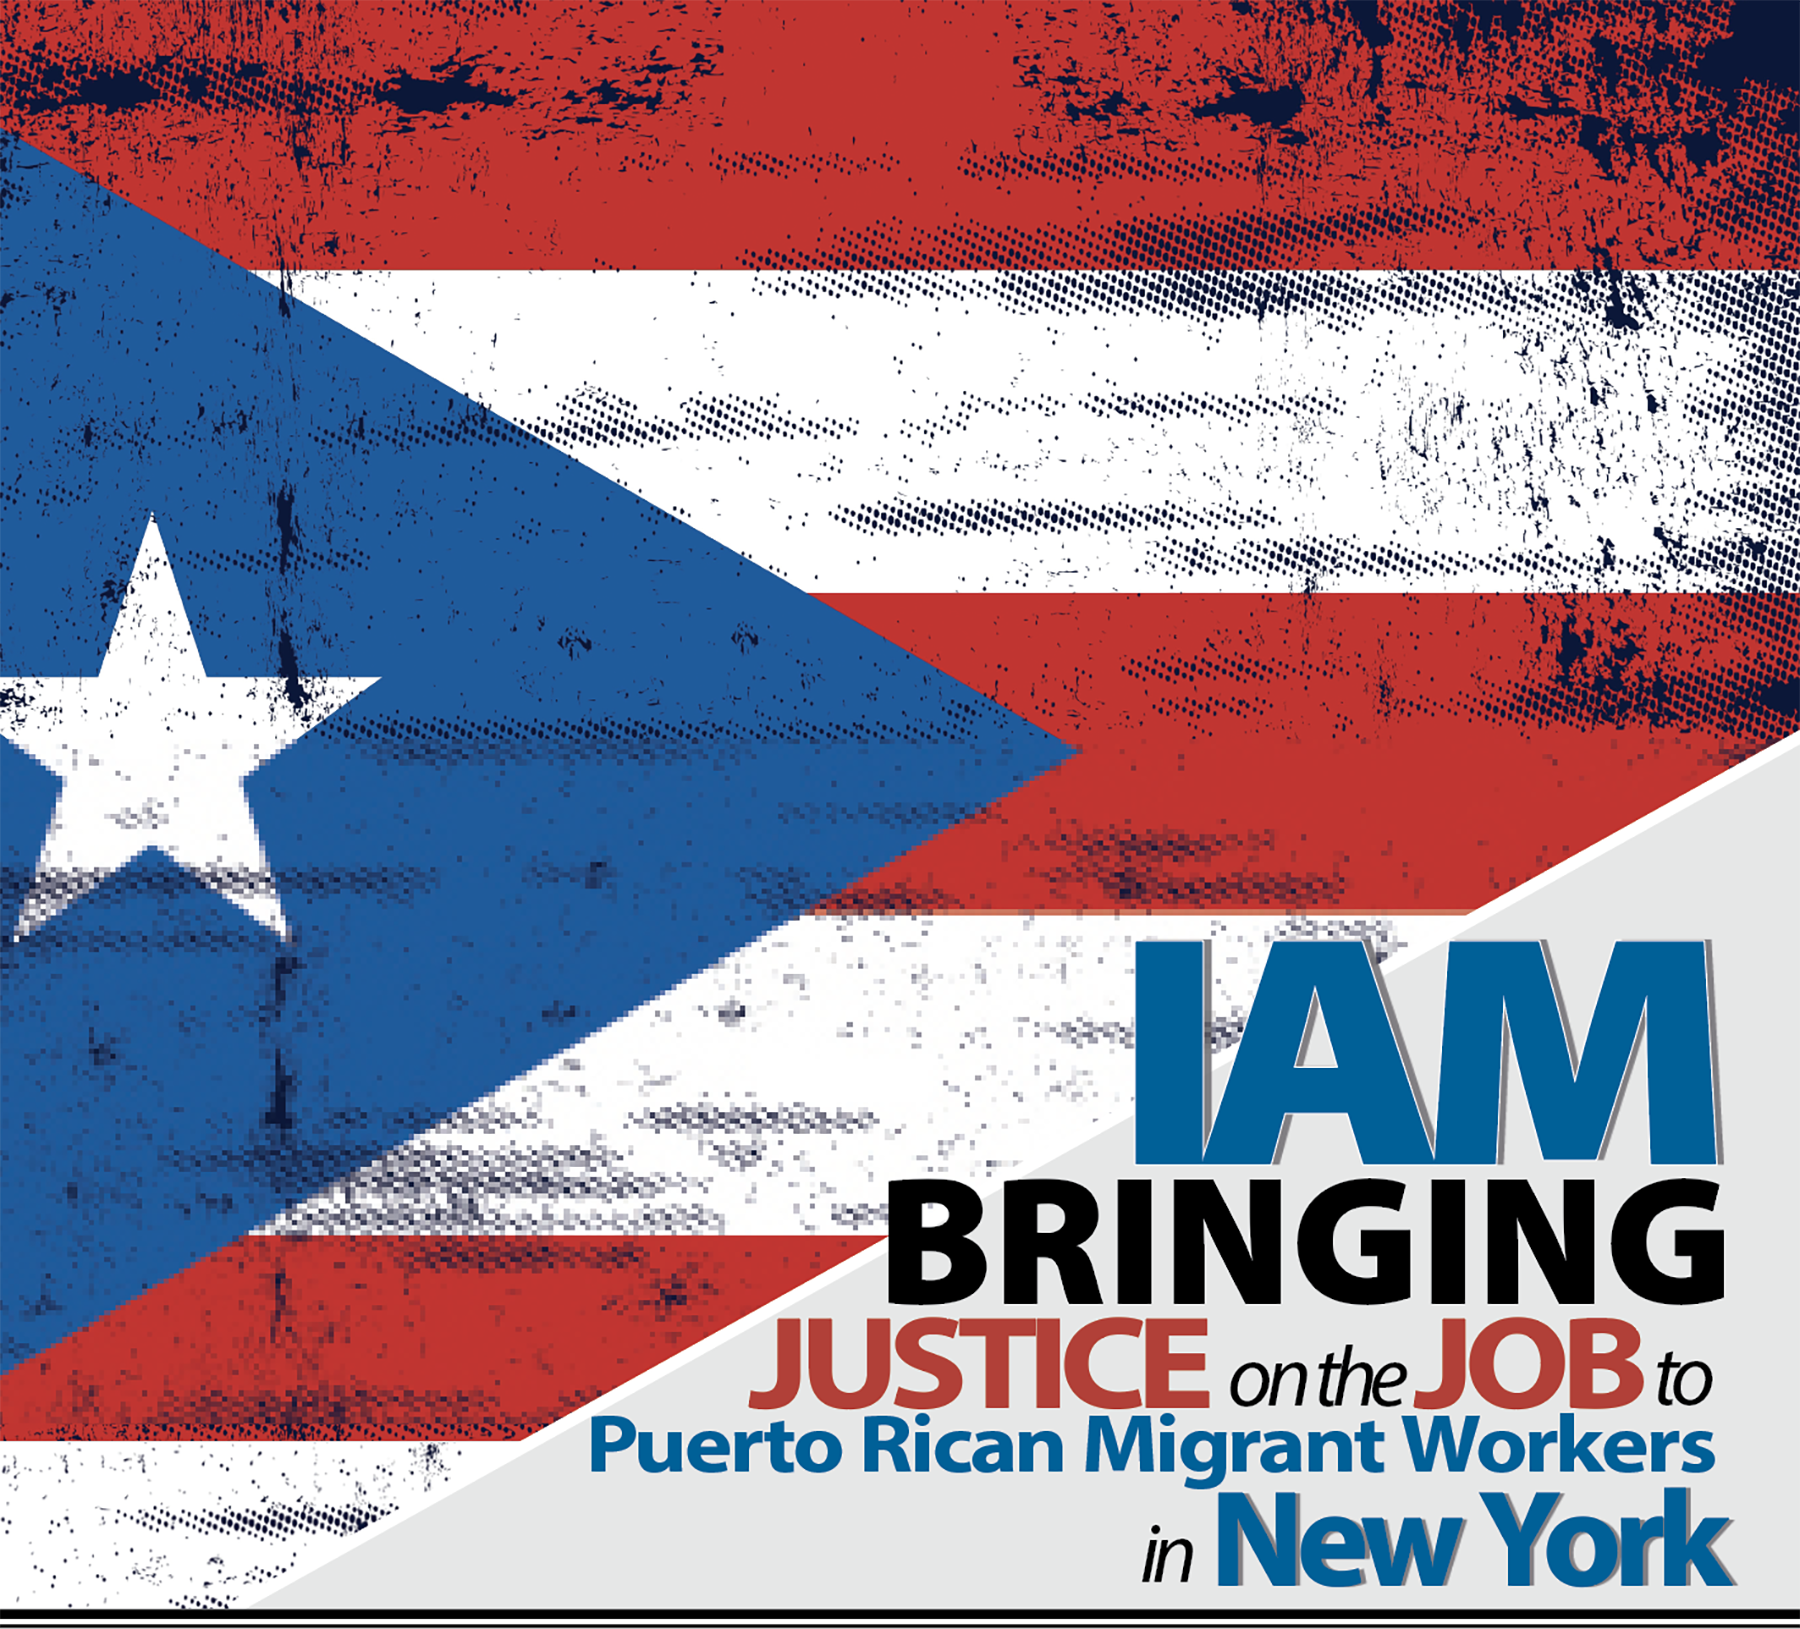 IAM Bringing Justice on the Job to Puerto Rican Migrant Workers in New York